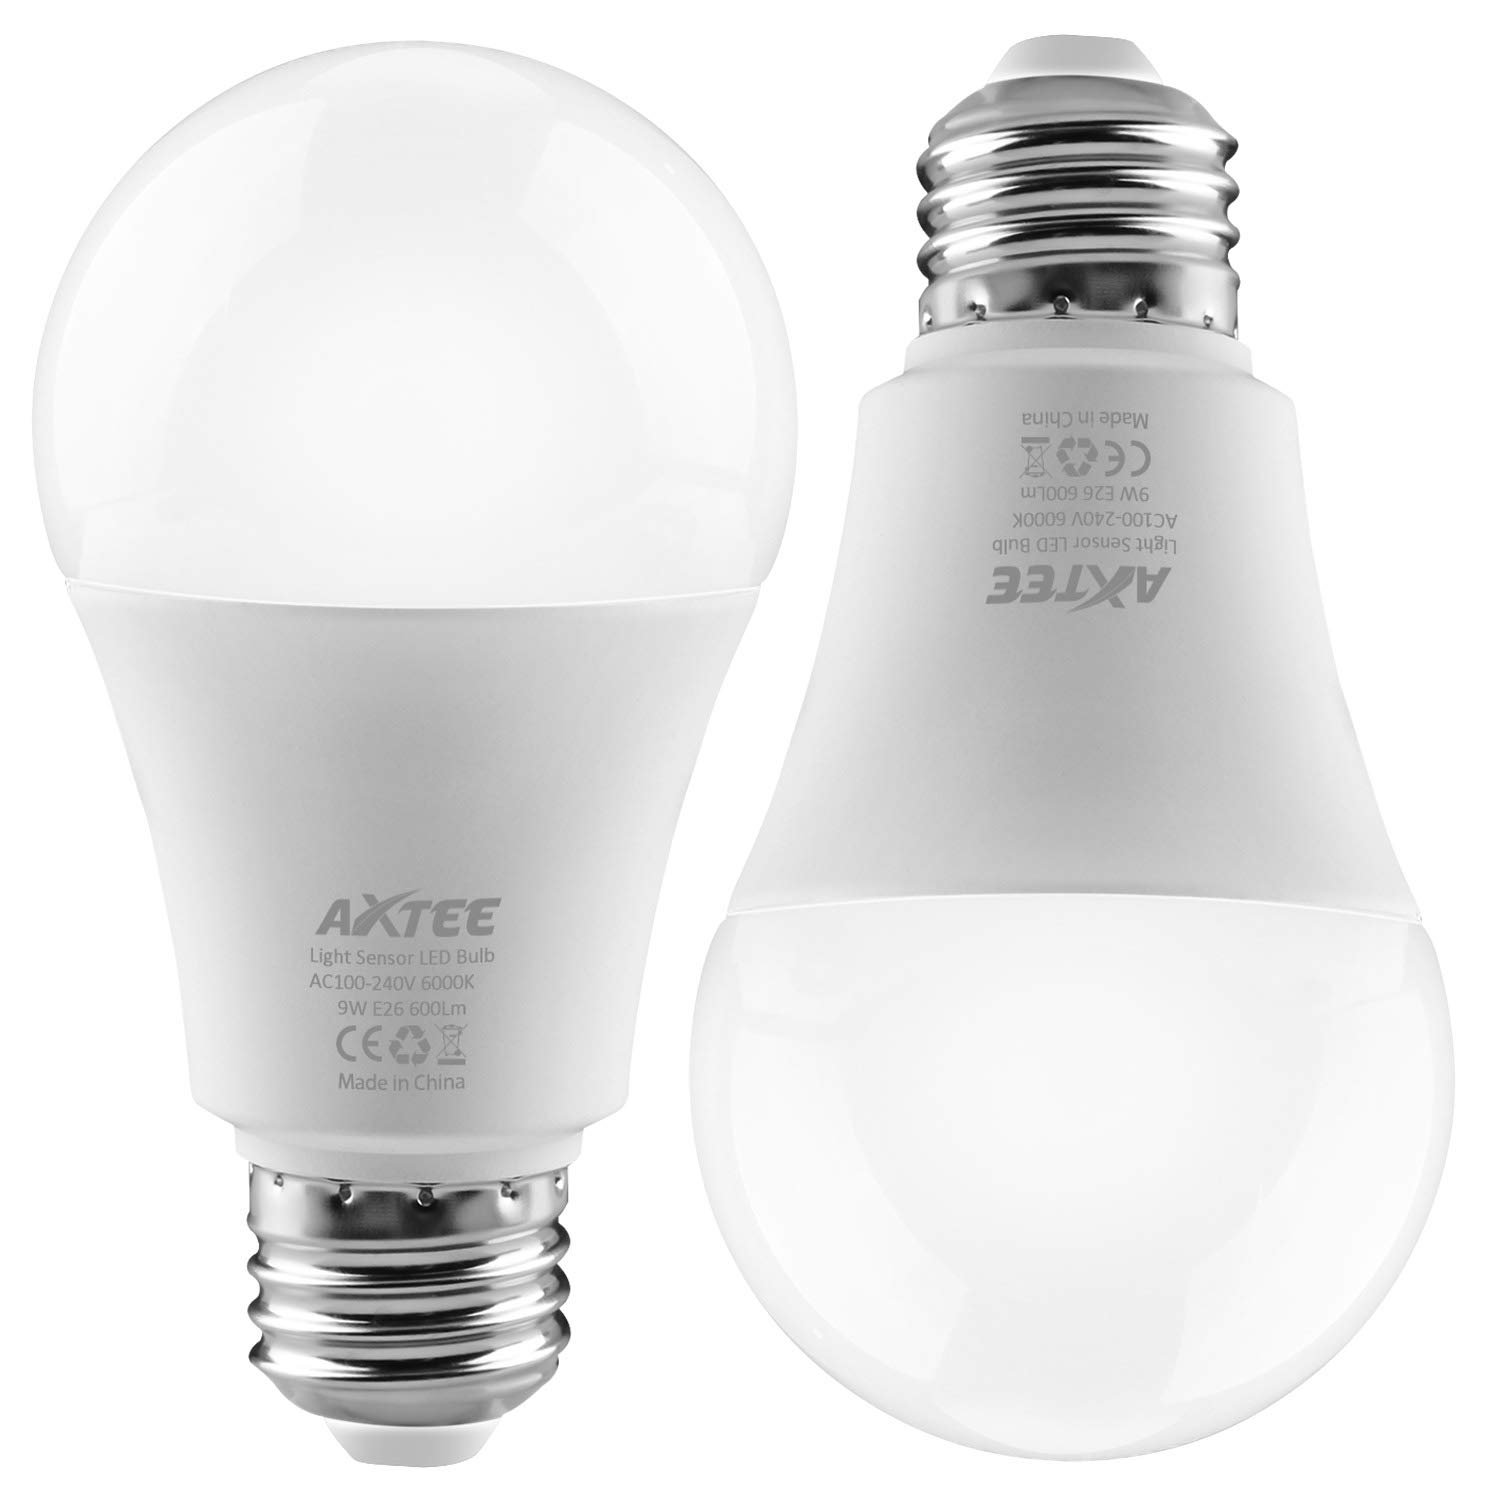 Smart Light Bulb Dusk to Dawn Sensor Led Light Bulbs Indoor/Outdoor E26 Base Socket Auto On/Off Lighting Lamp 9W (6000K, 2 Pack)